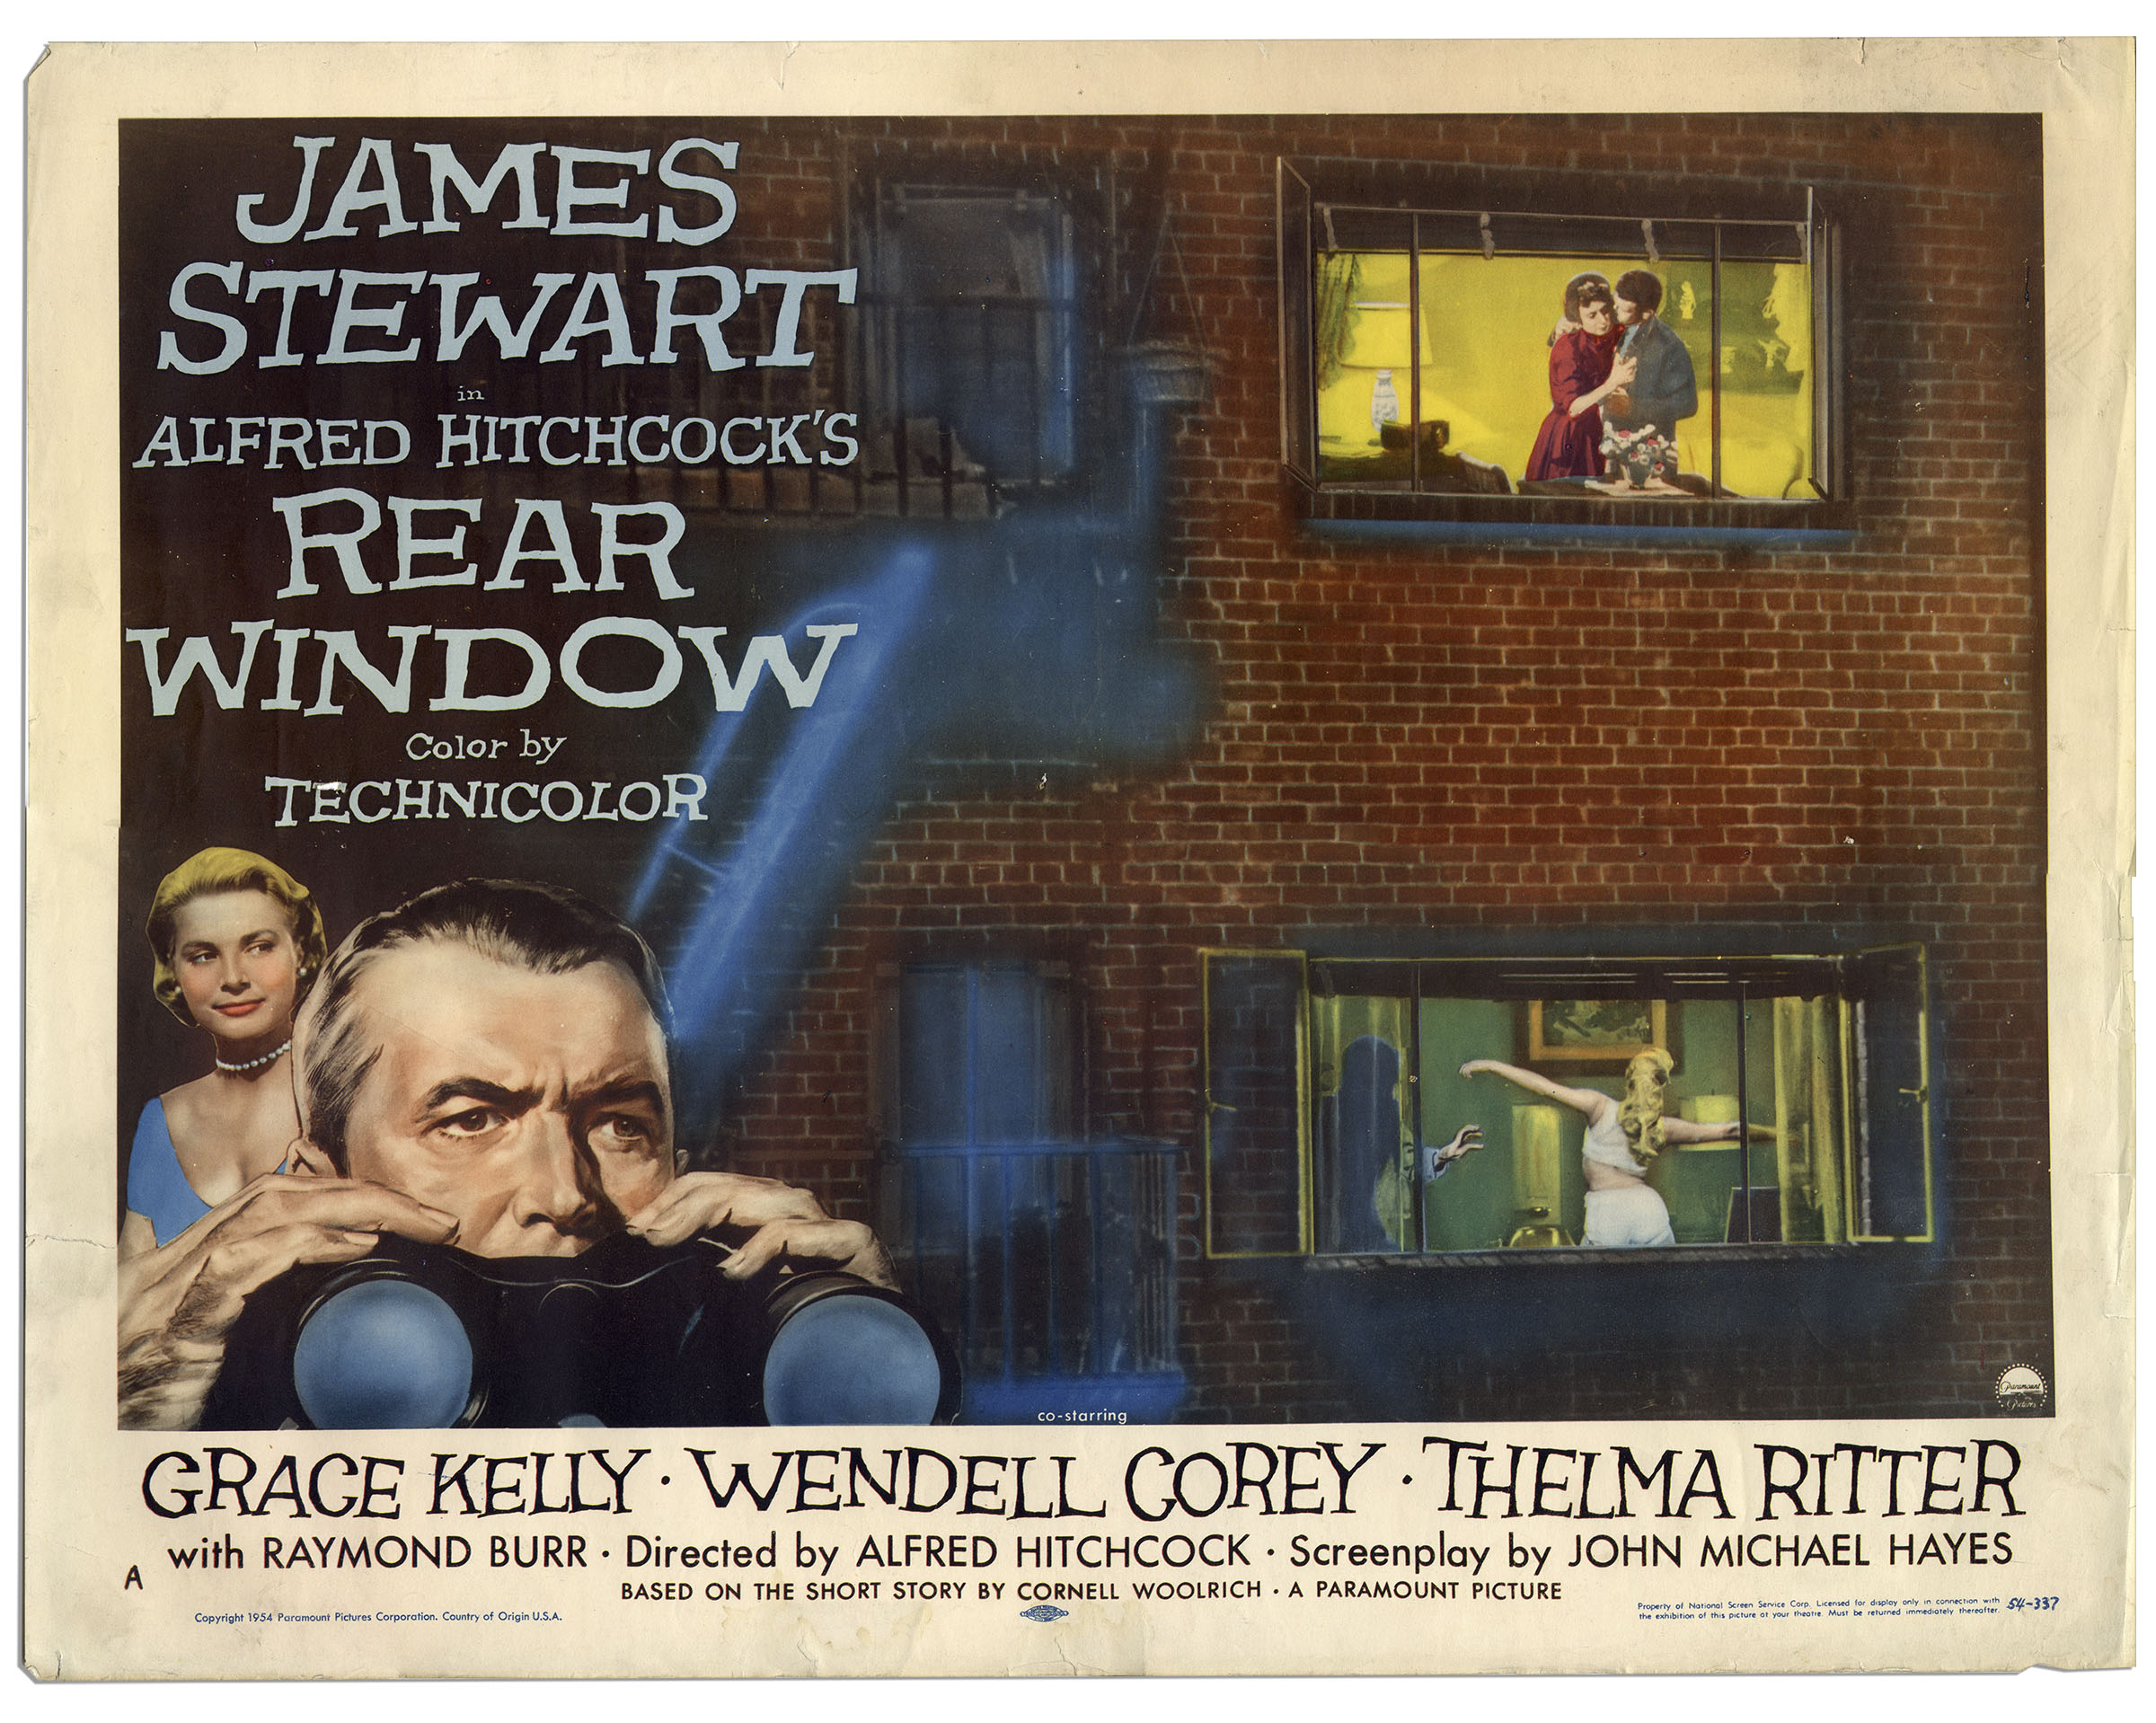 critical analysis of alfred hitchcock's rear Rear windowalfred hitchcockalfred hitchcock's film 'rear window' was made at paramount studios in 1954 with a highly talented cast including james stewart, grace kelly and raymond burr, hitchcock hyped the film with taglines such as see it, if your n.